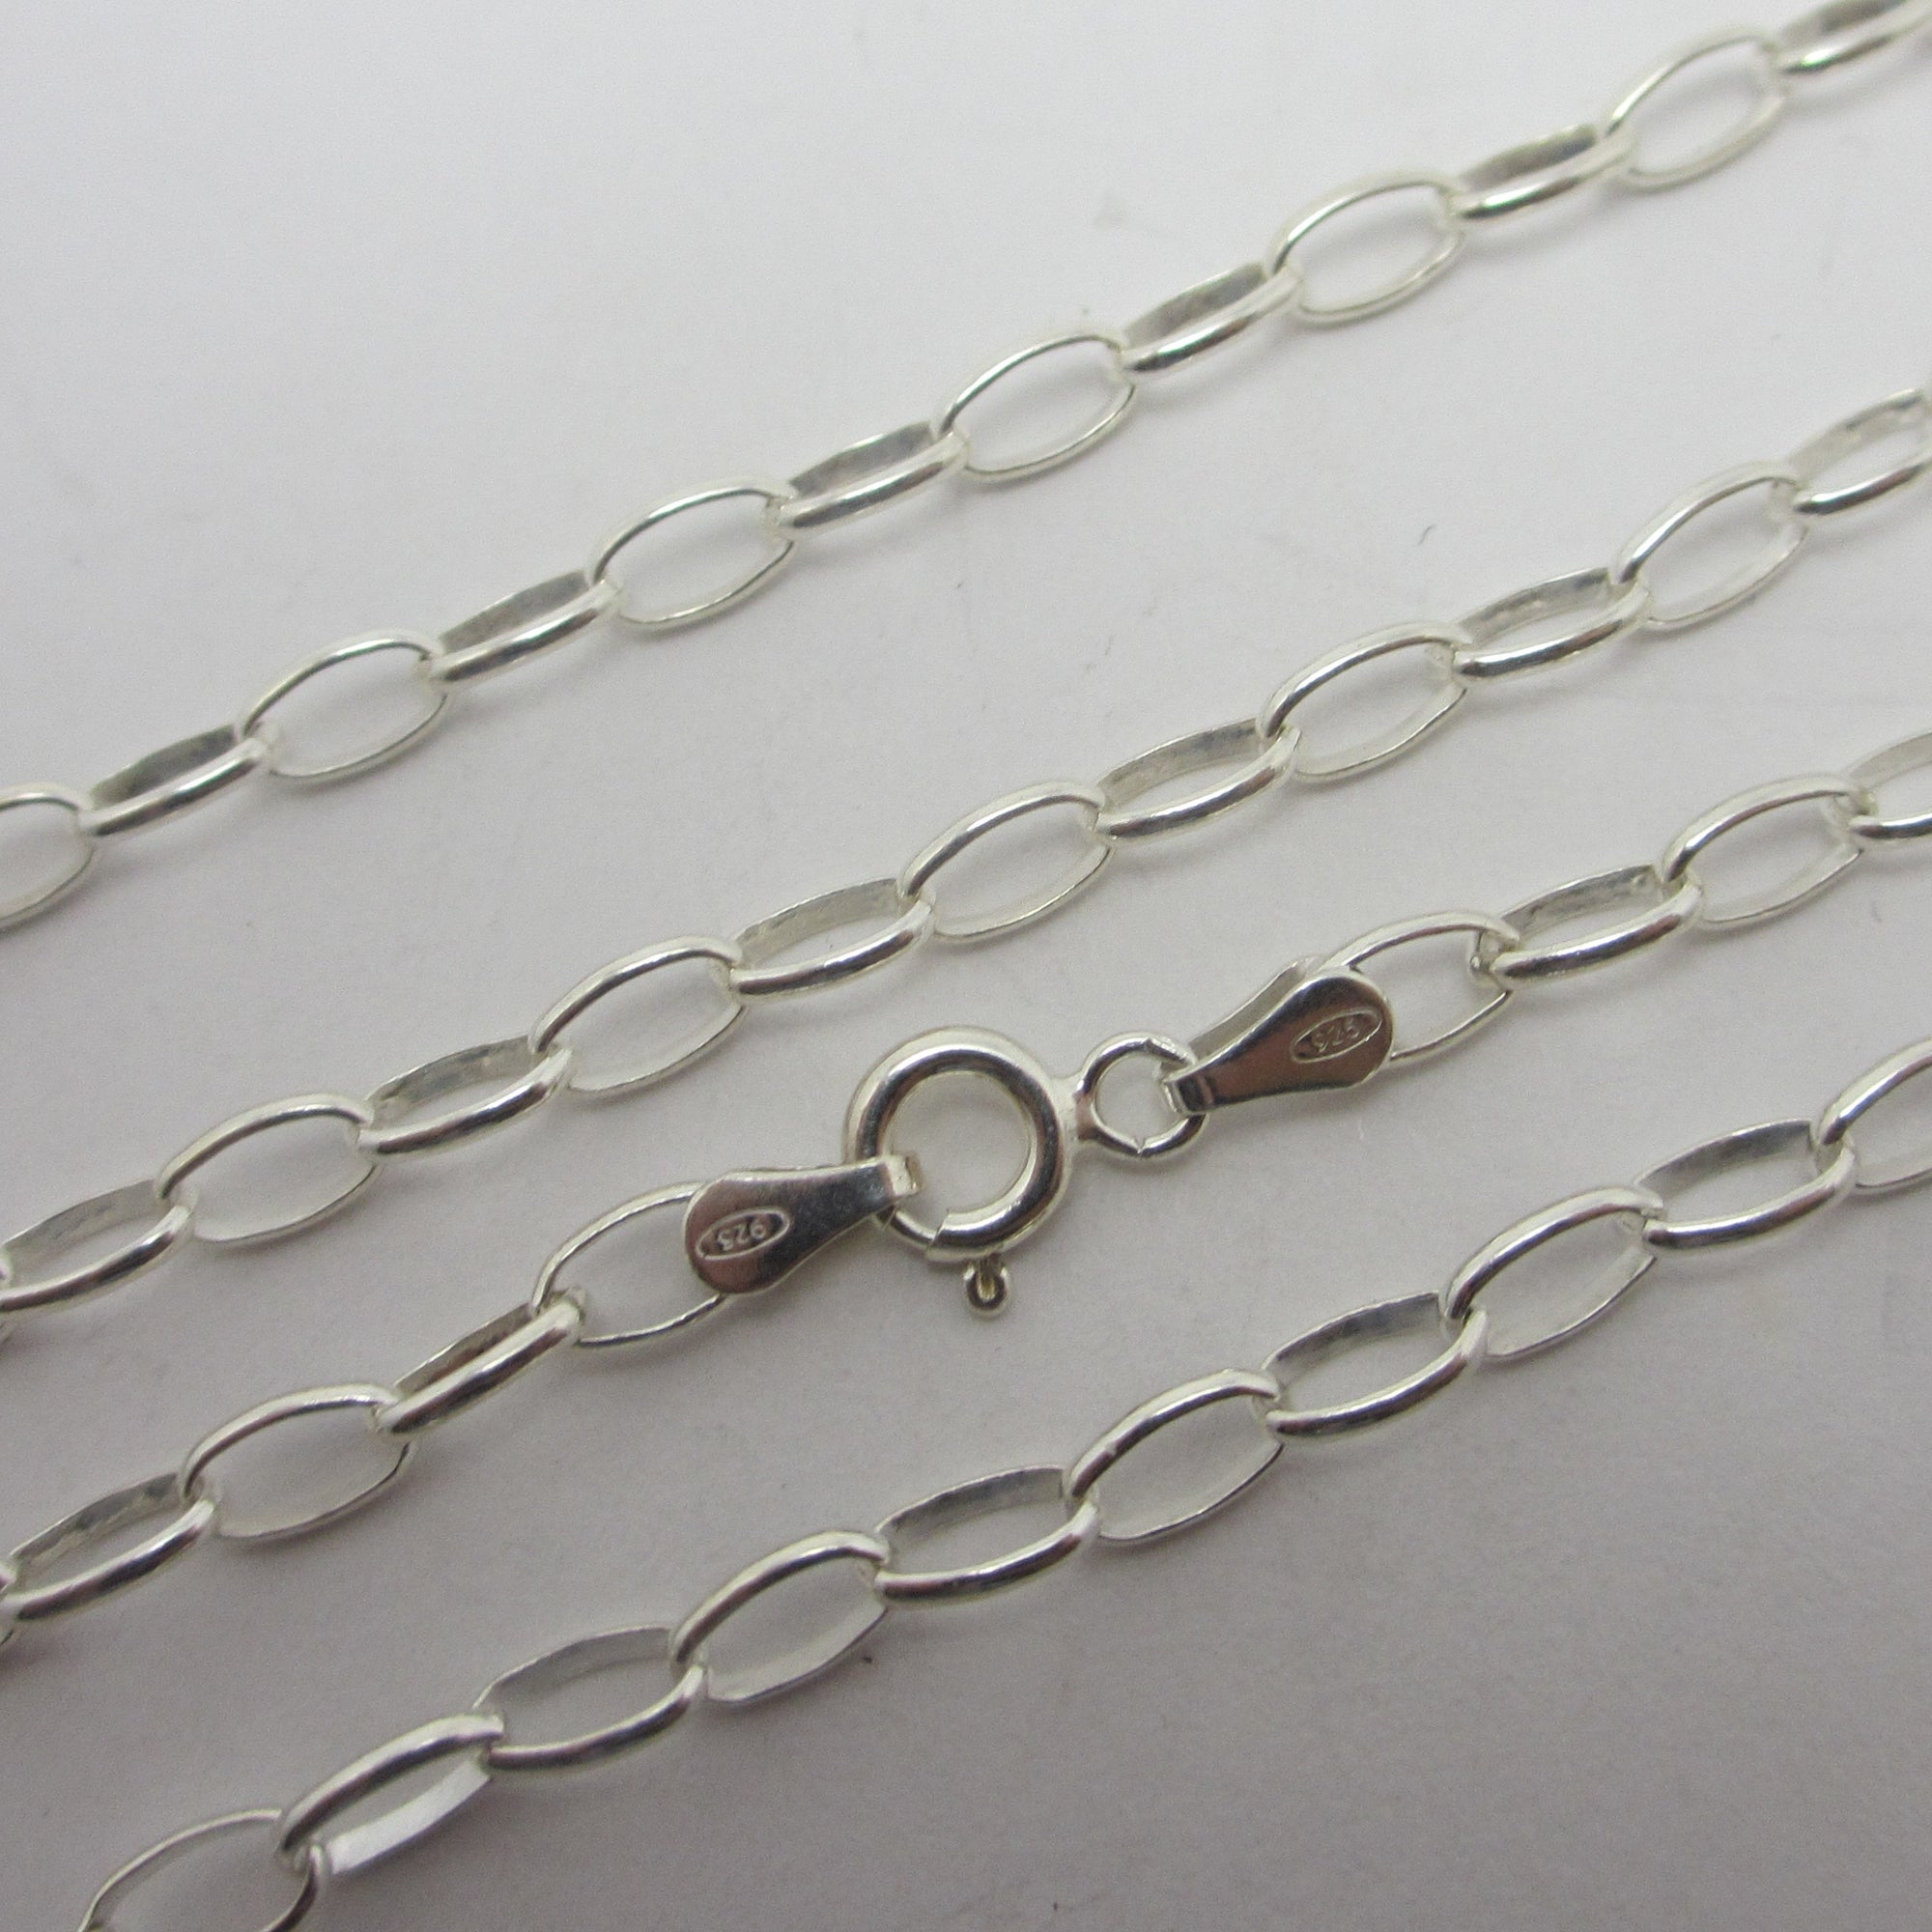 "Cable Link Sterling Silver Chain Necklace 55.5 cm / 21.8"" Vintage c1980"